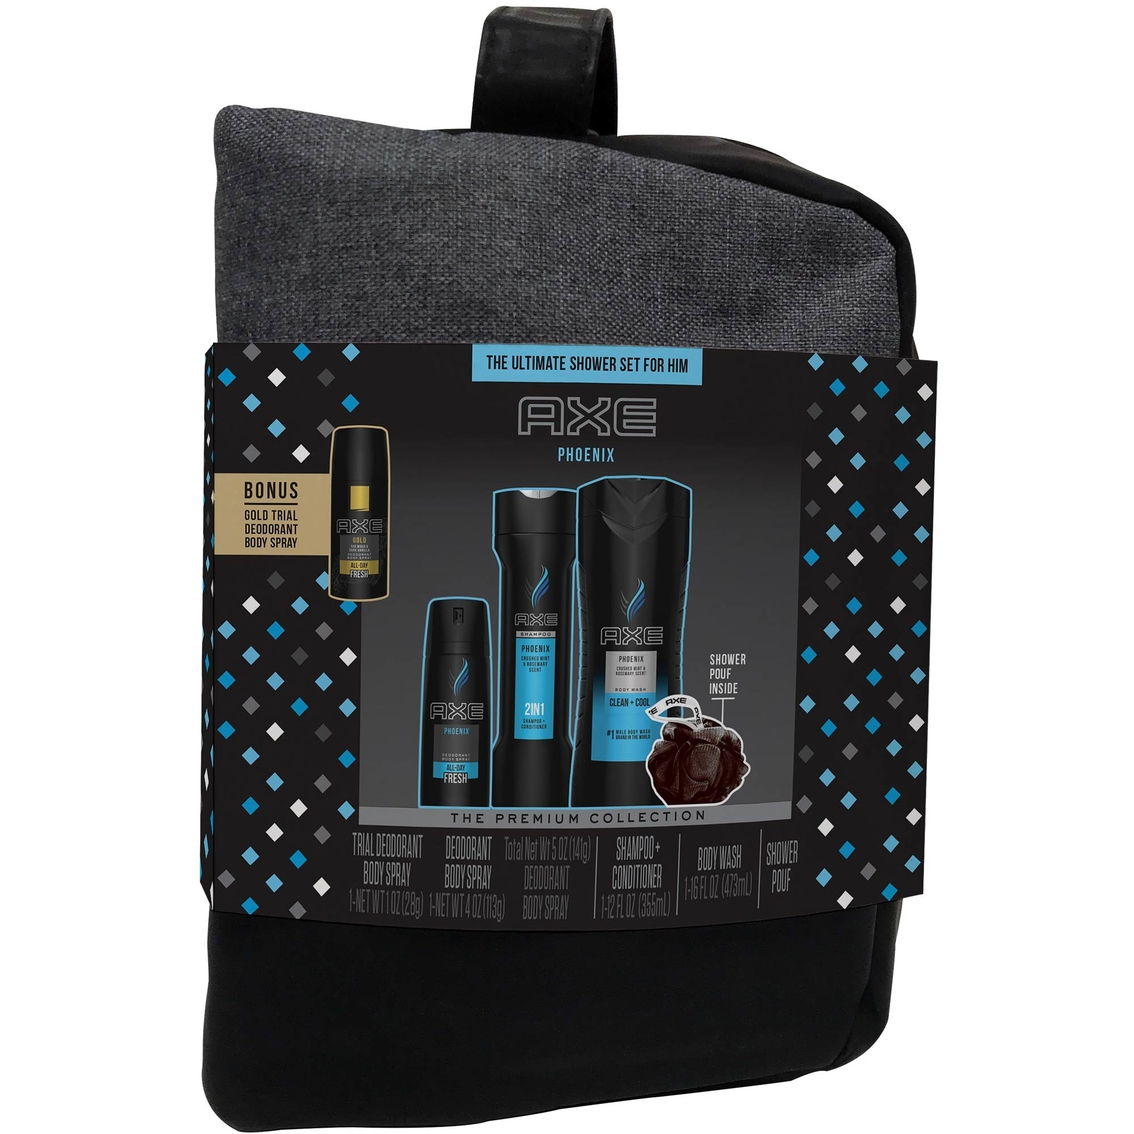 dd170b54eab Axe Phoenix Gift Set For Men With Shower Bag 4 Pc.   Body   Hair ...